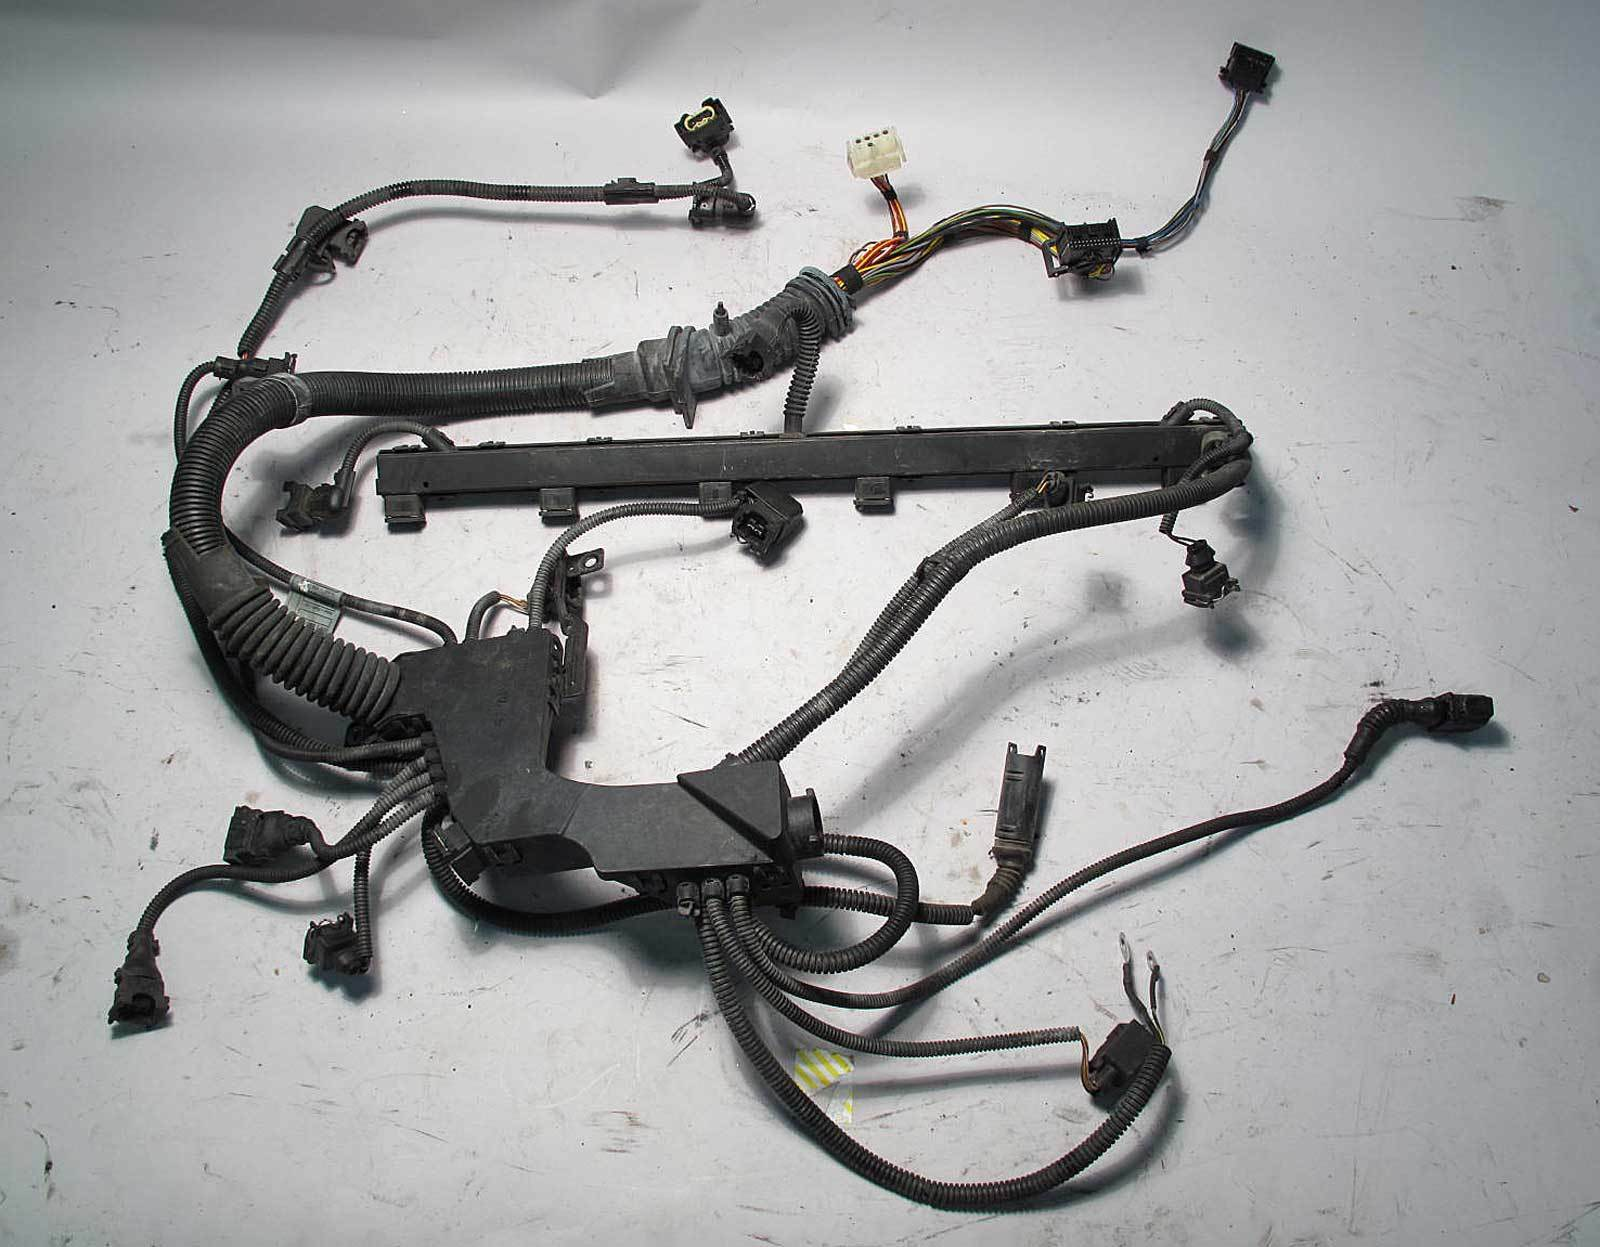 Bmw E46 3 Series M54 Engine Wiring Harness Complete 03 2003 2006 1 Of 2 See More